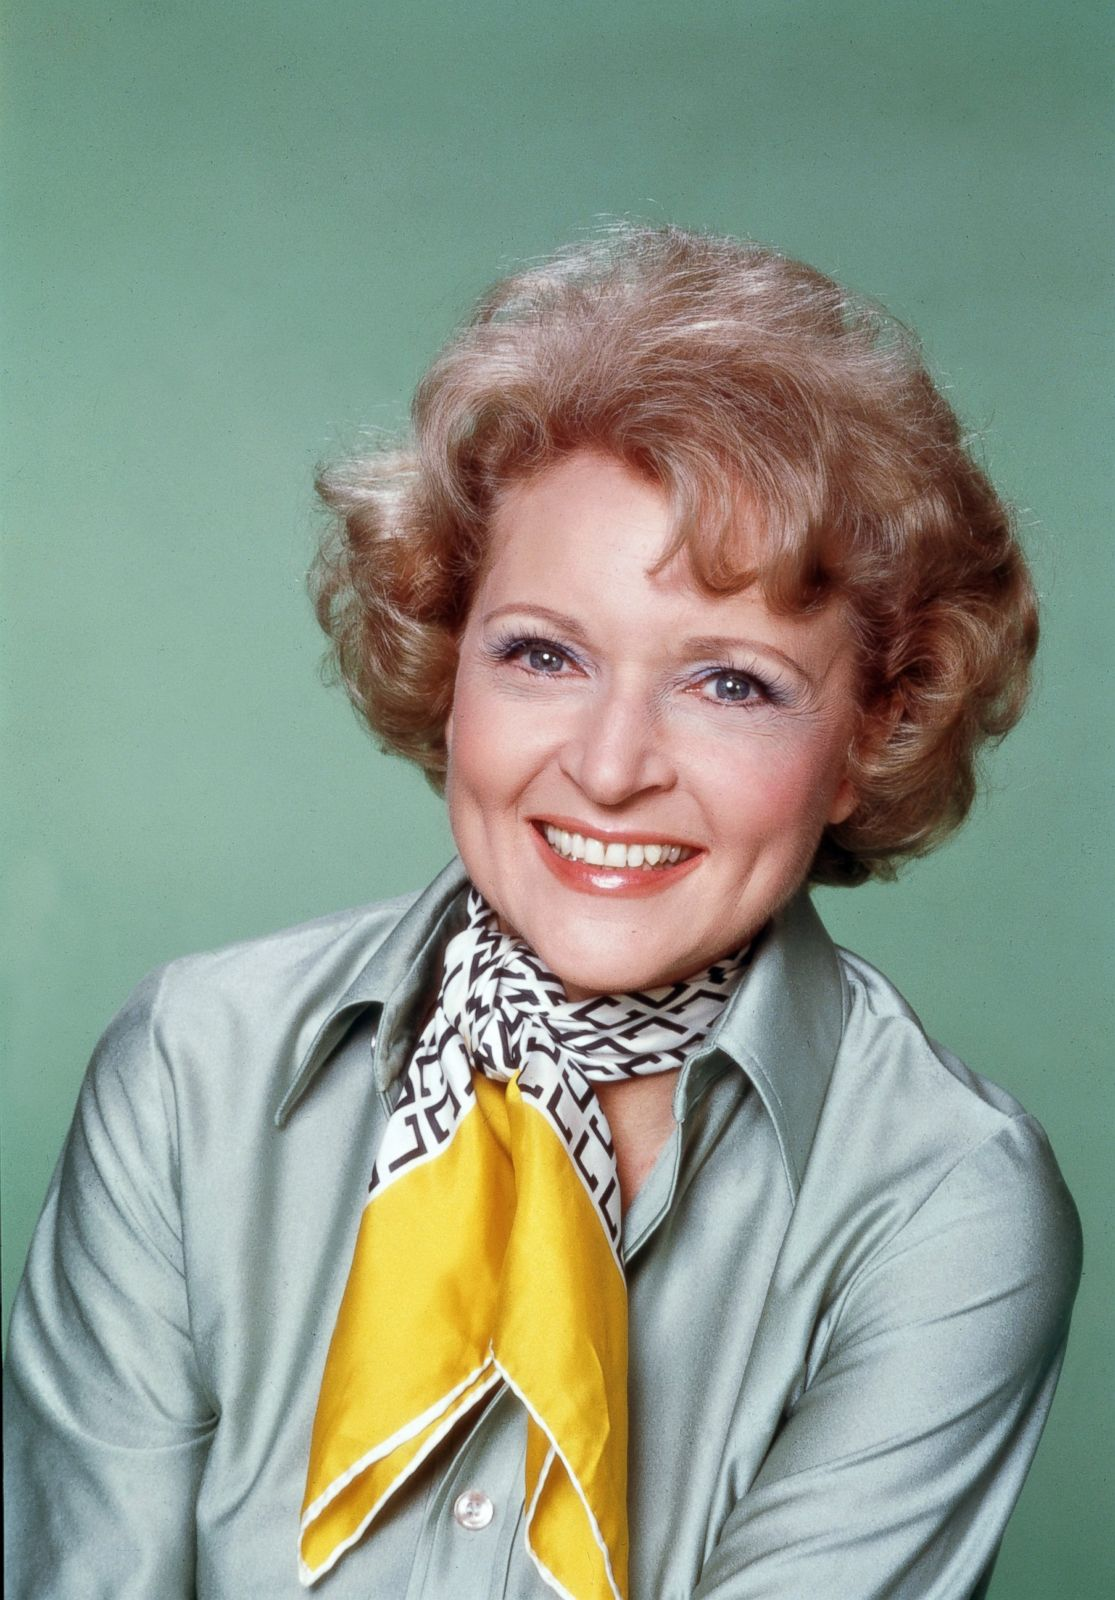 Betty White Through the Years Photos | Image #7 - ABC News